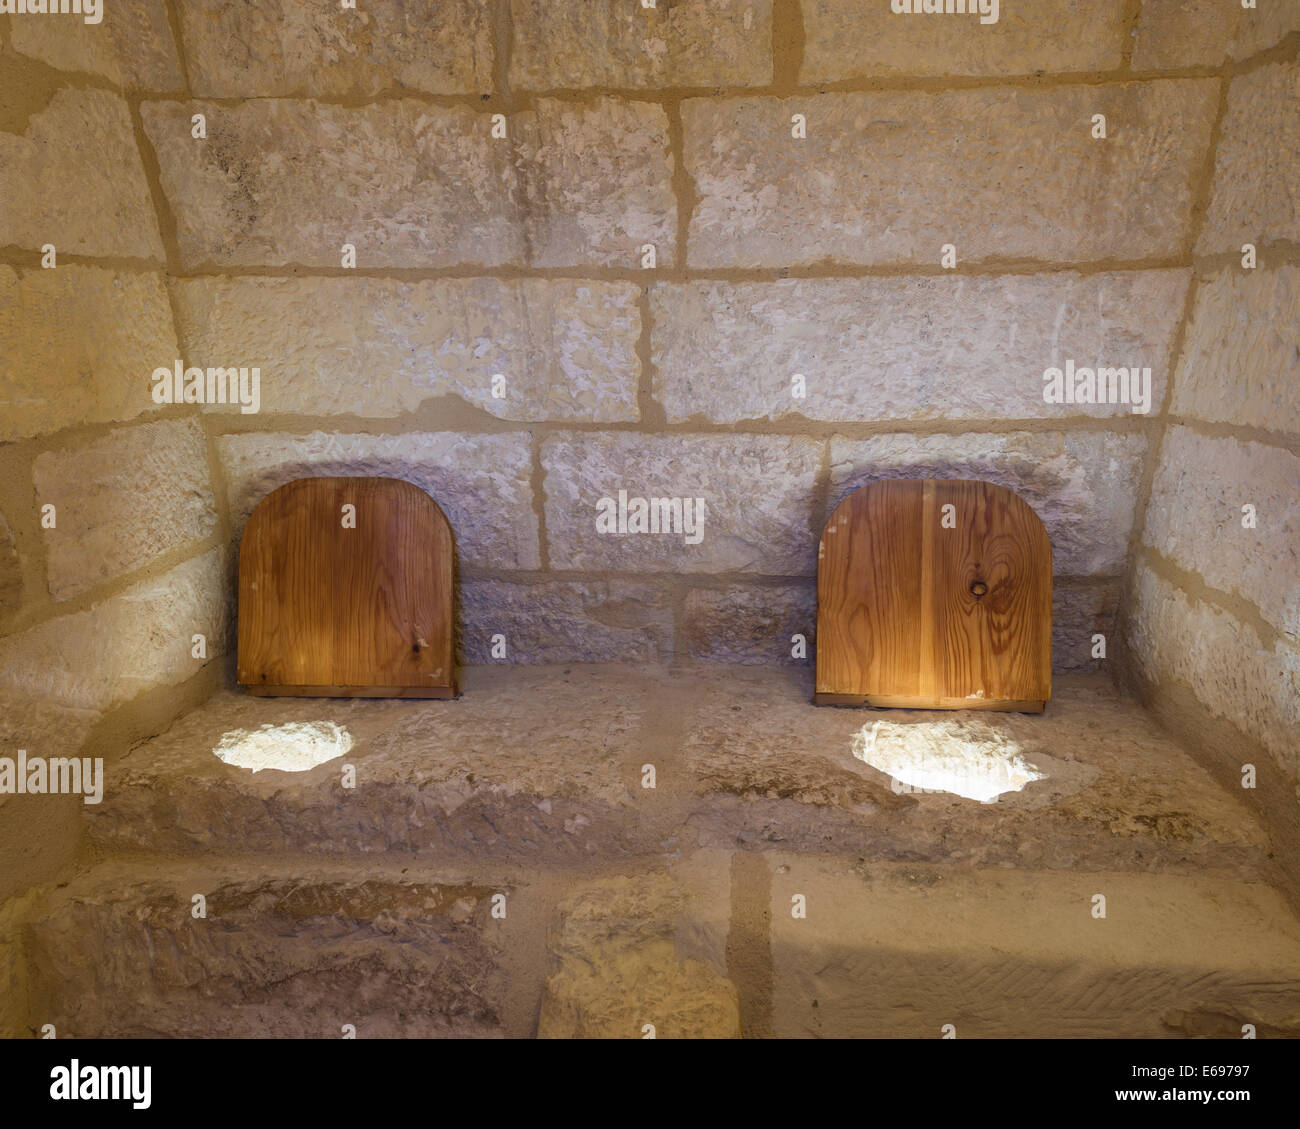 Simple Medieval Toilet In The Castillo De Belmonte Castle Cuenca Province Region